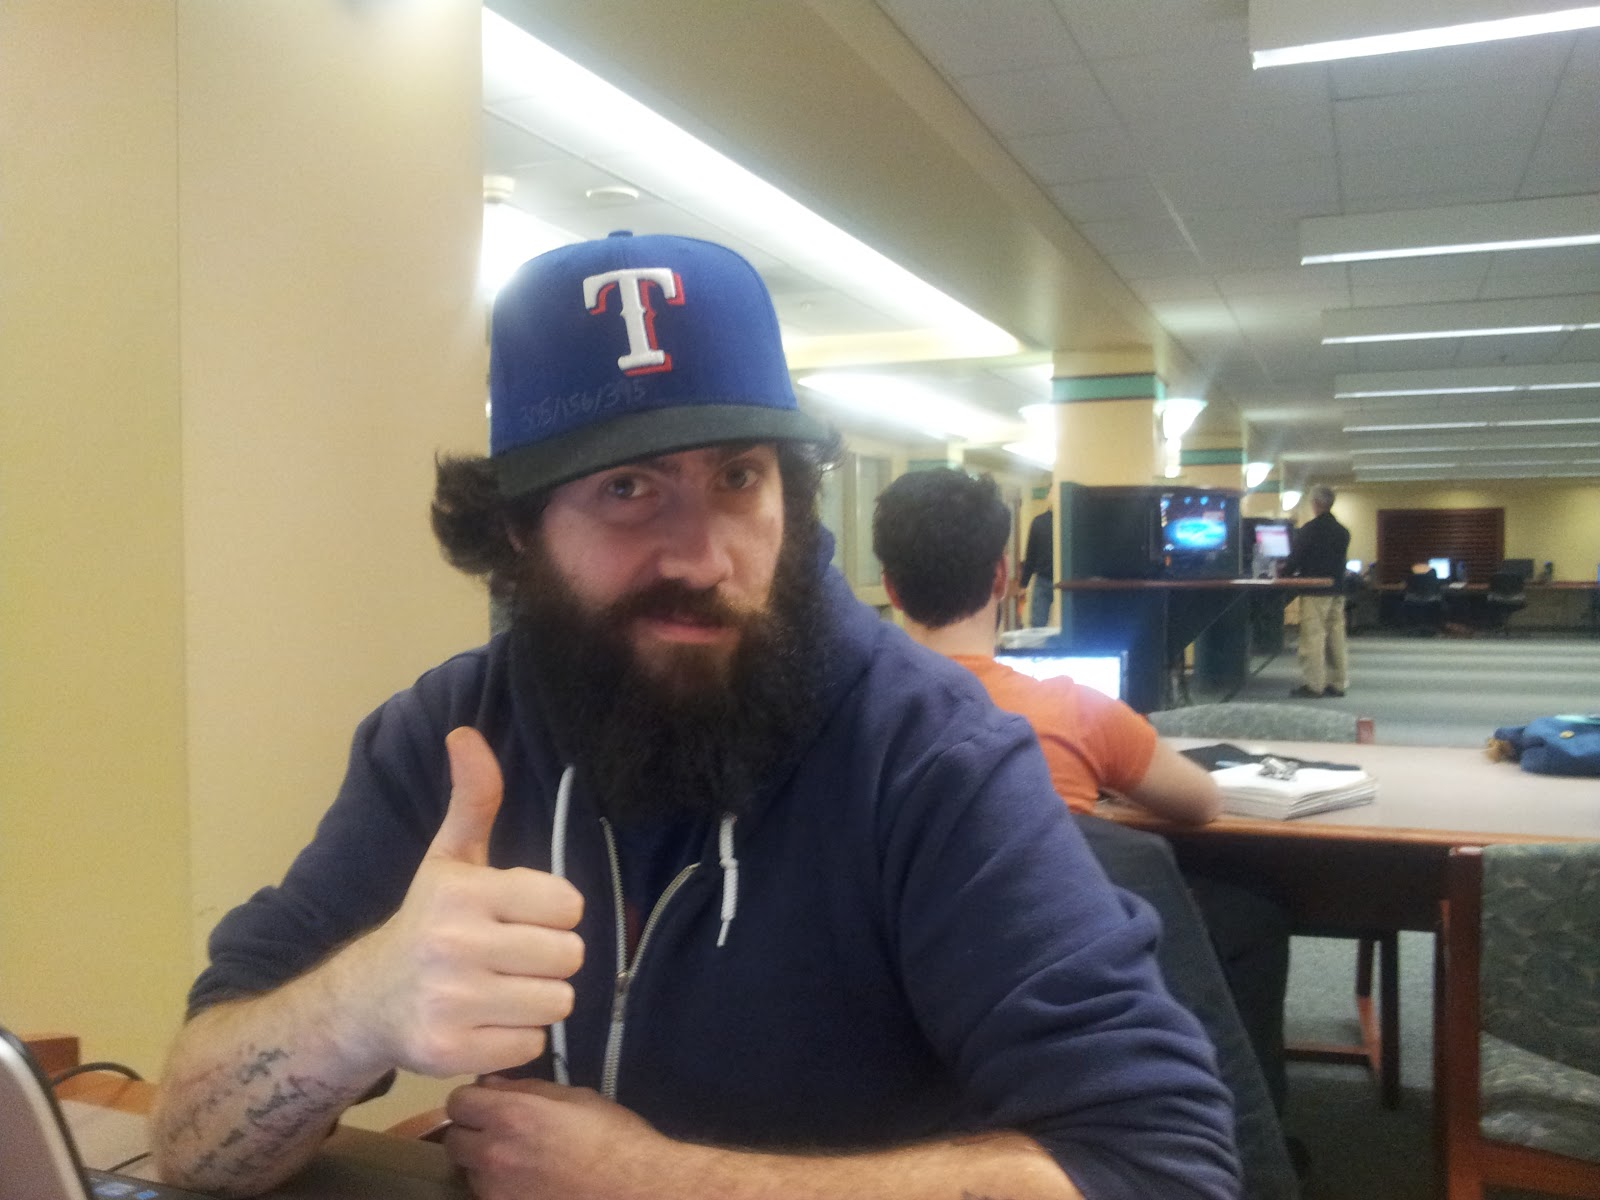 Hats and Tats: A Lifestyle: March 3- Texas Rangers